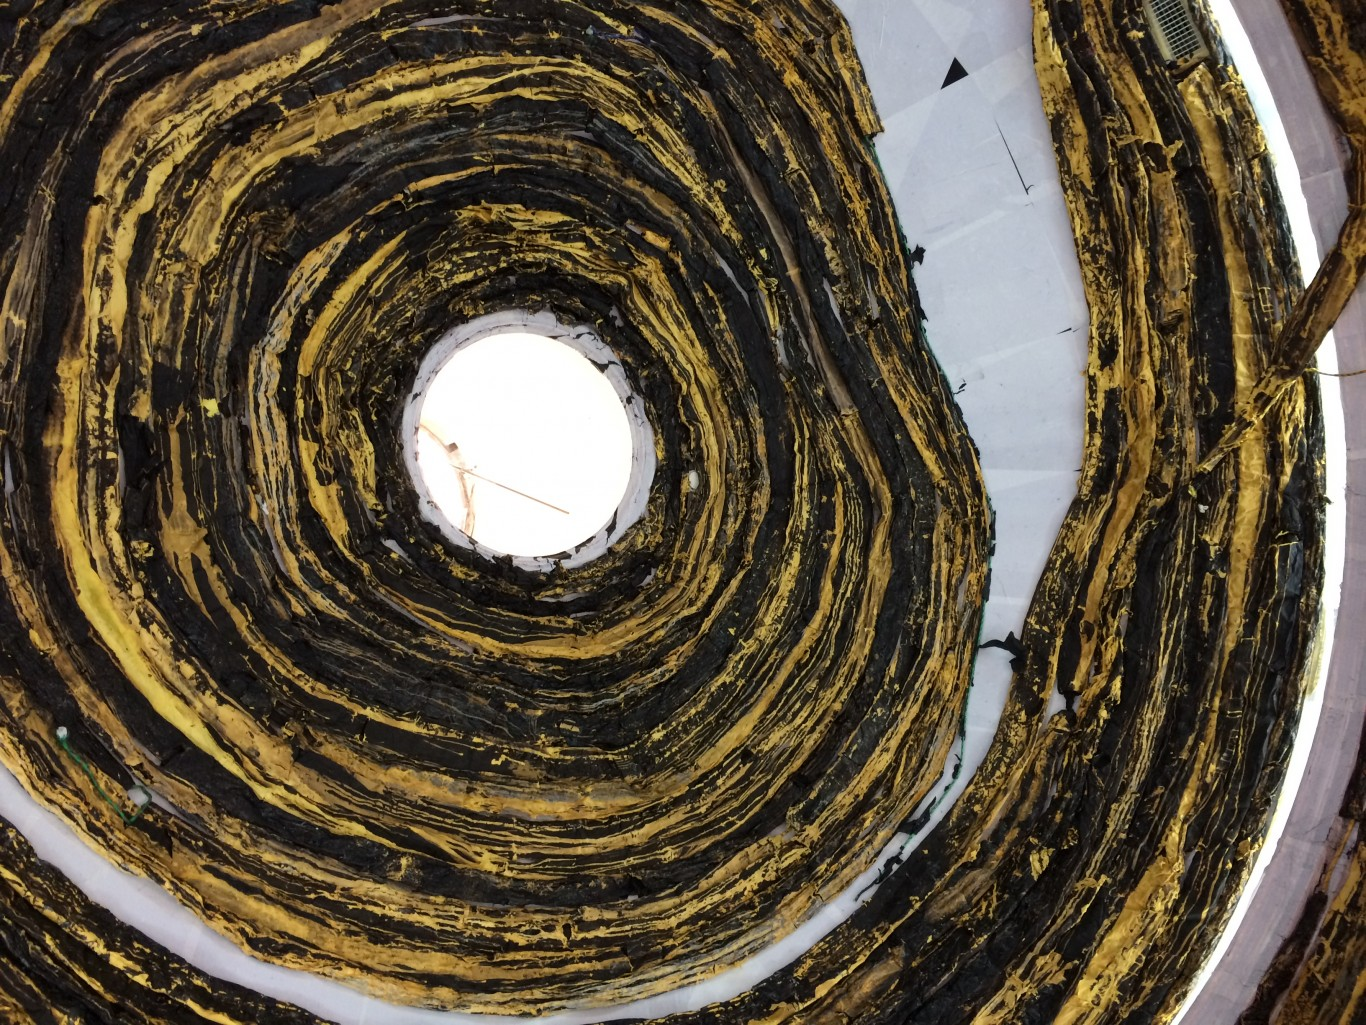 The rotunda, spiralling with painted-and-bleached black-and-gold paper.